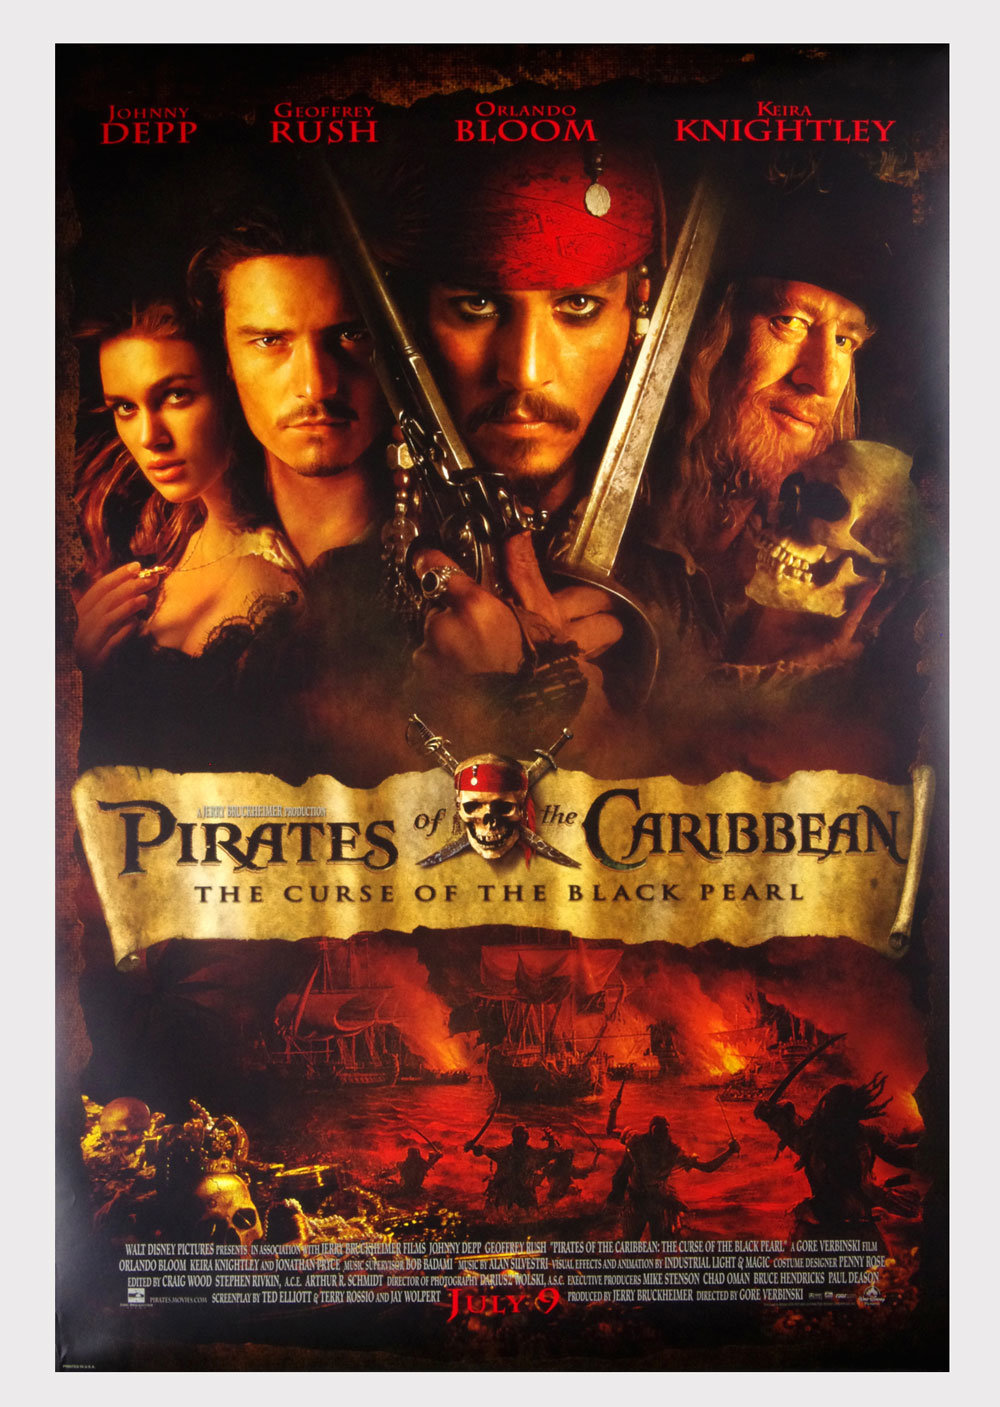 PIRATES OF THE CARIBBEAN Poster 2003 Johnny Debb 27 x 40 Double Sided